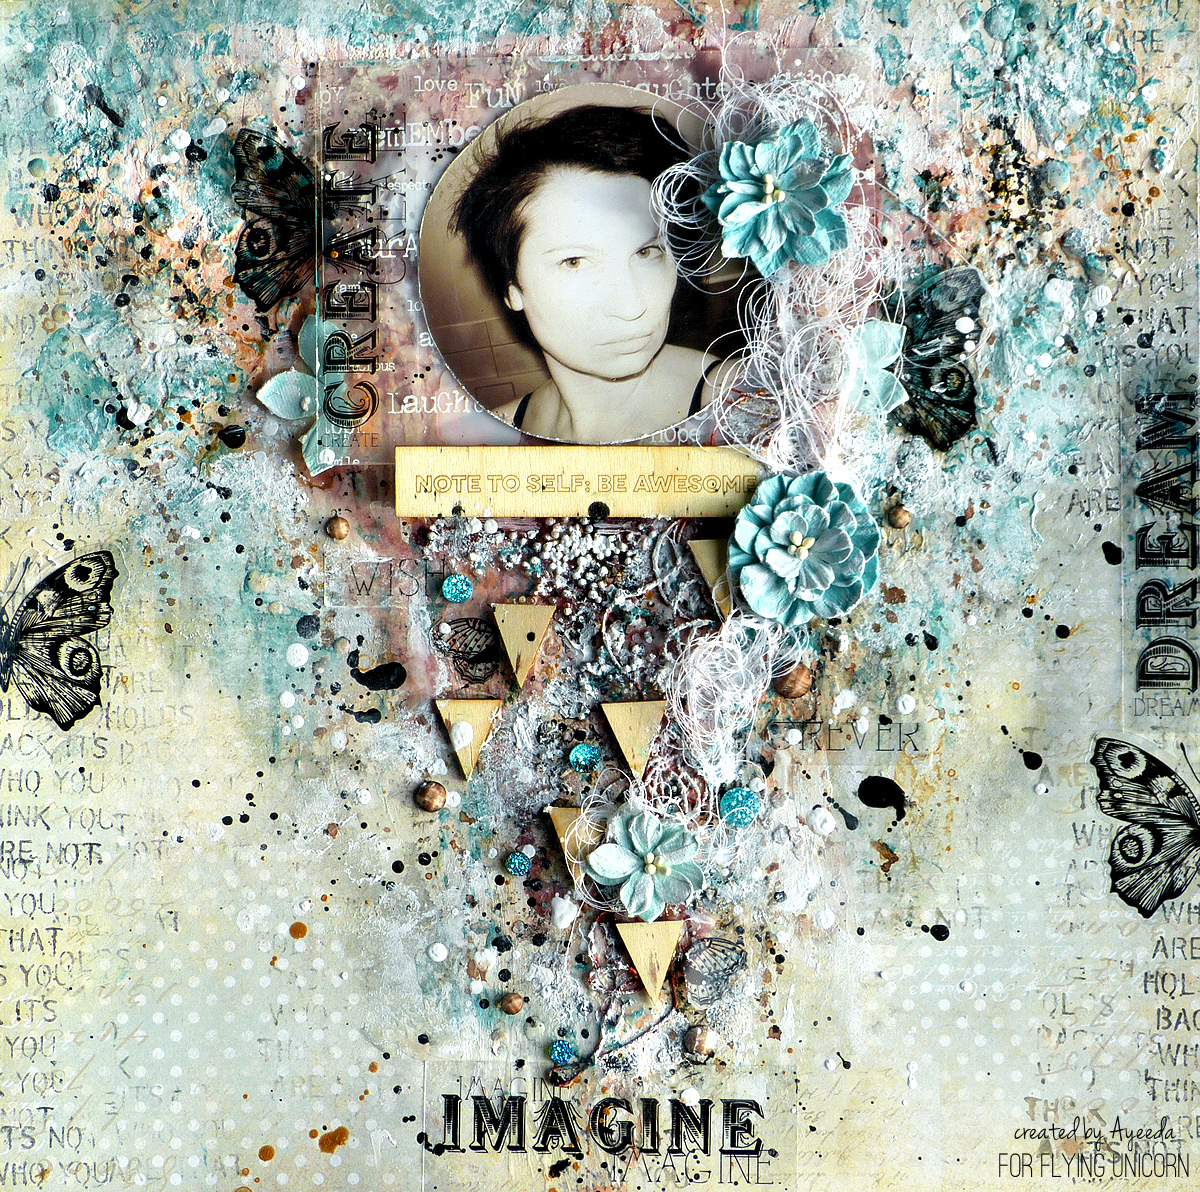 http://13pasji.blogspot.com/2015/02/imagine-lo-flying-unicorn-february-kom.html